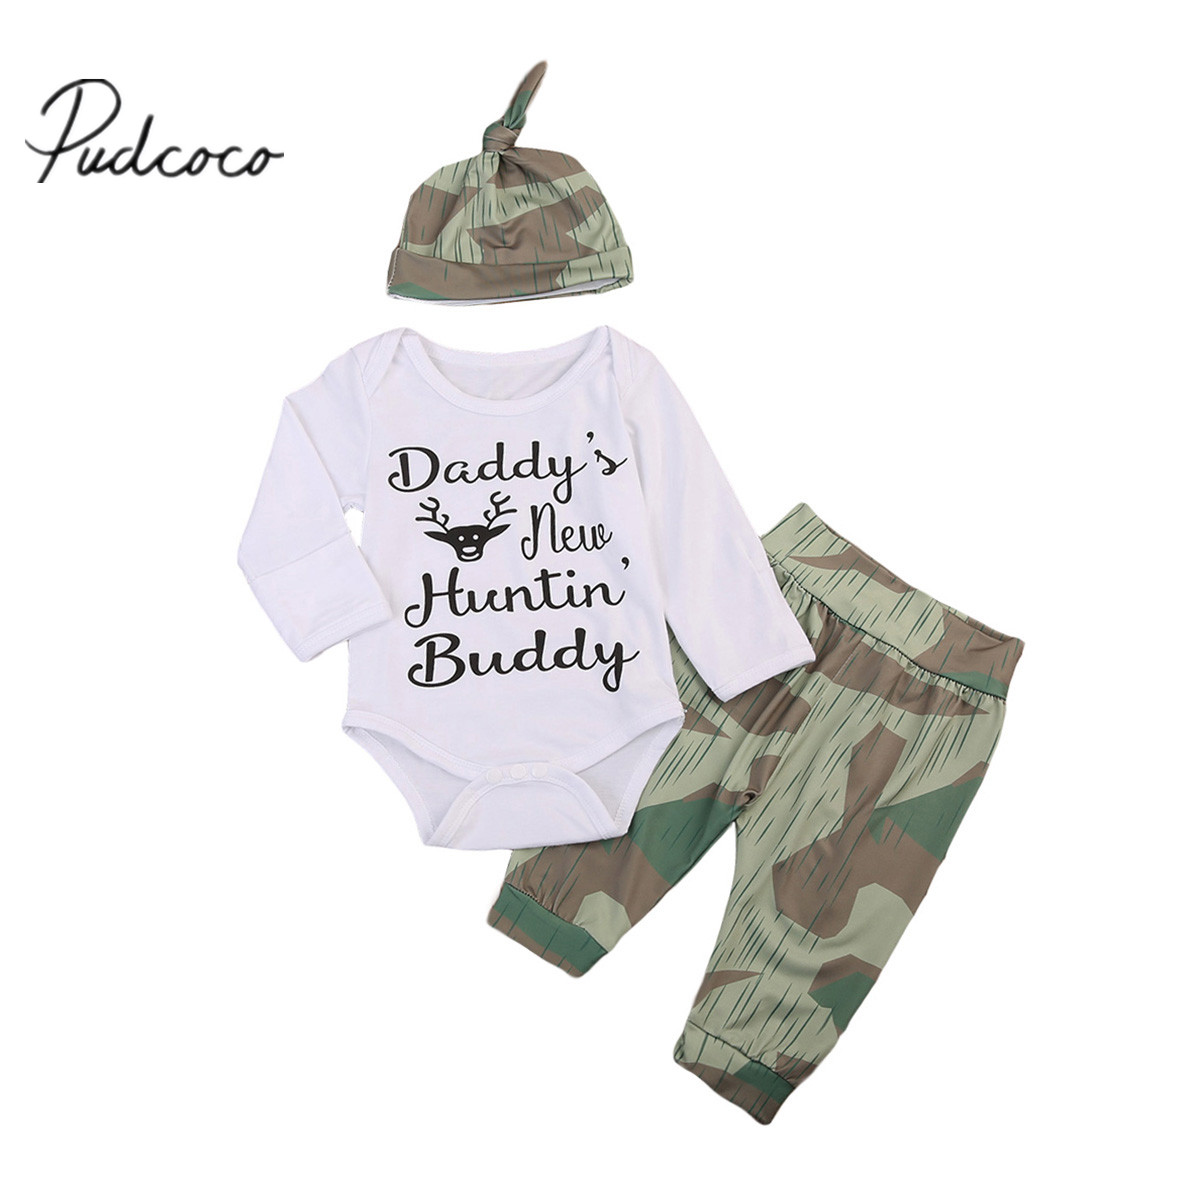 Pudcoco Newborn Toddler Baby Boy Clothes Romper Xmas Jumpsuit Tops+Camo Pants Outfits Set Clothes 0-24M